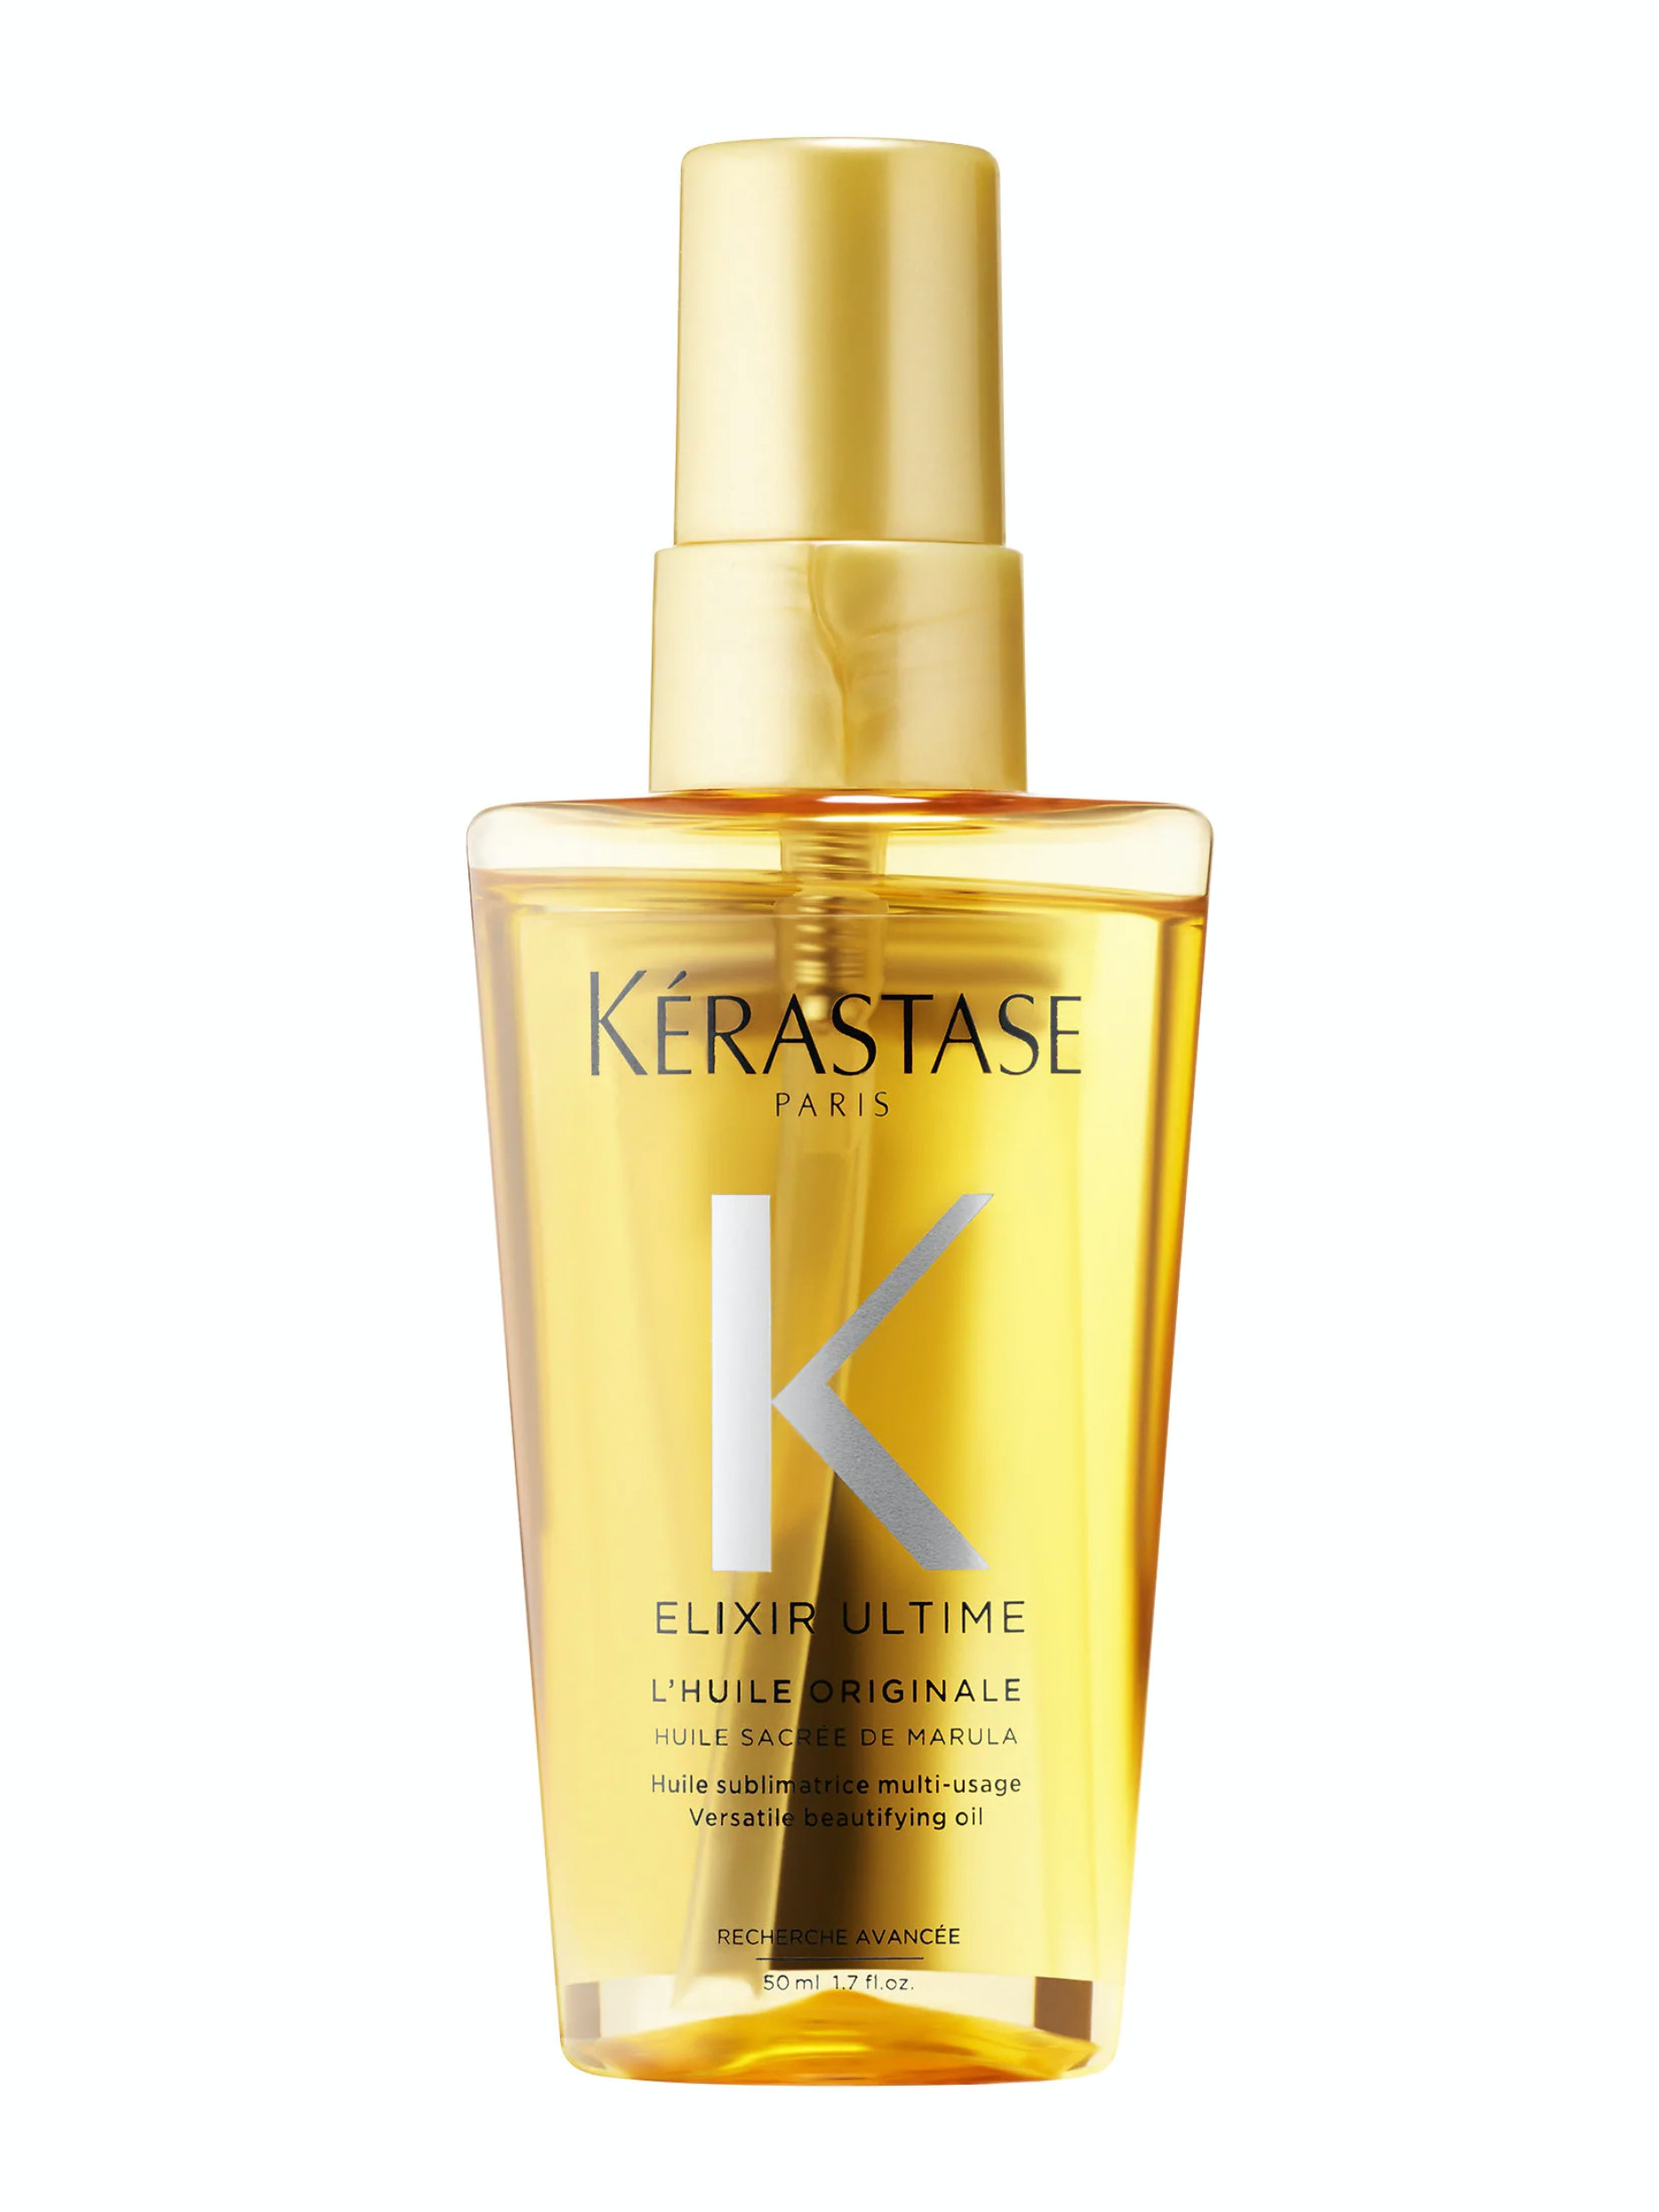 Kerastase Elixir Ultime L'Huile Originale Travel-Size Hair Oil